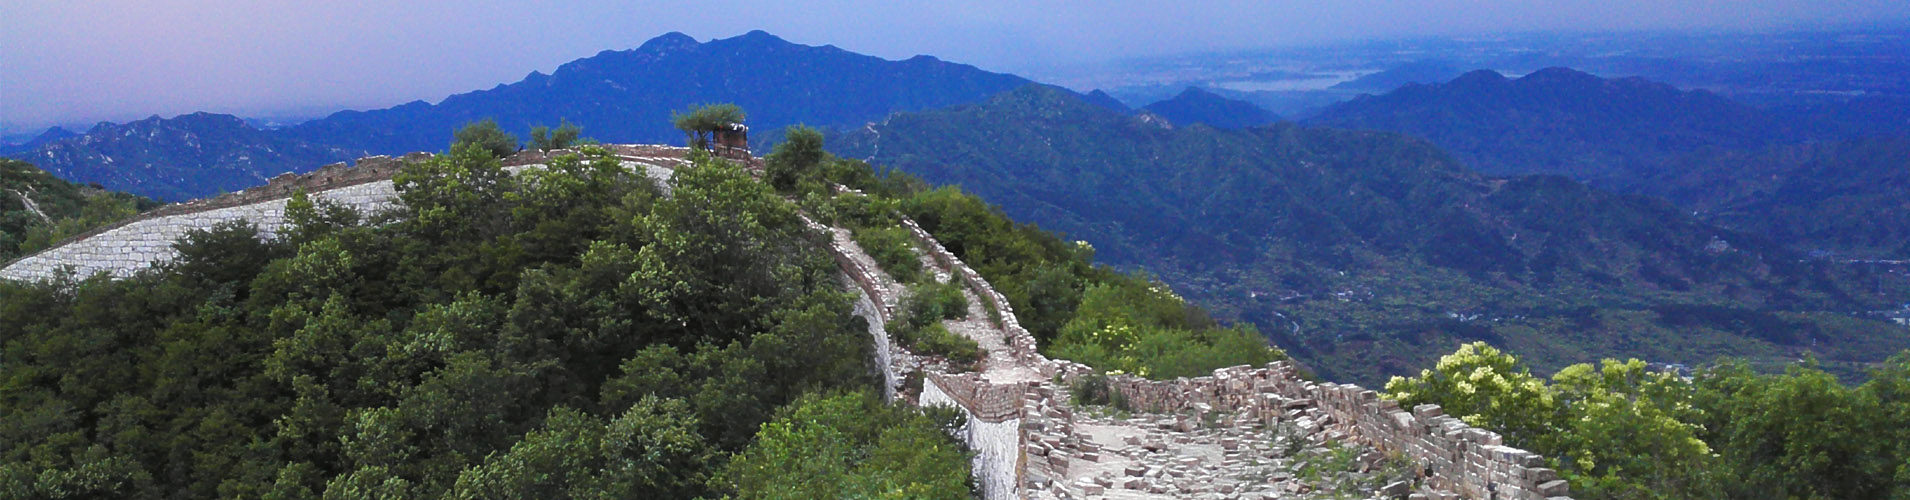 Jiankou Great wall hike